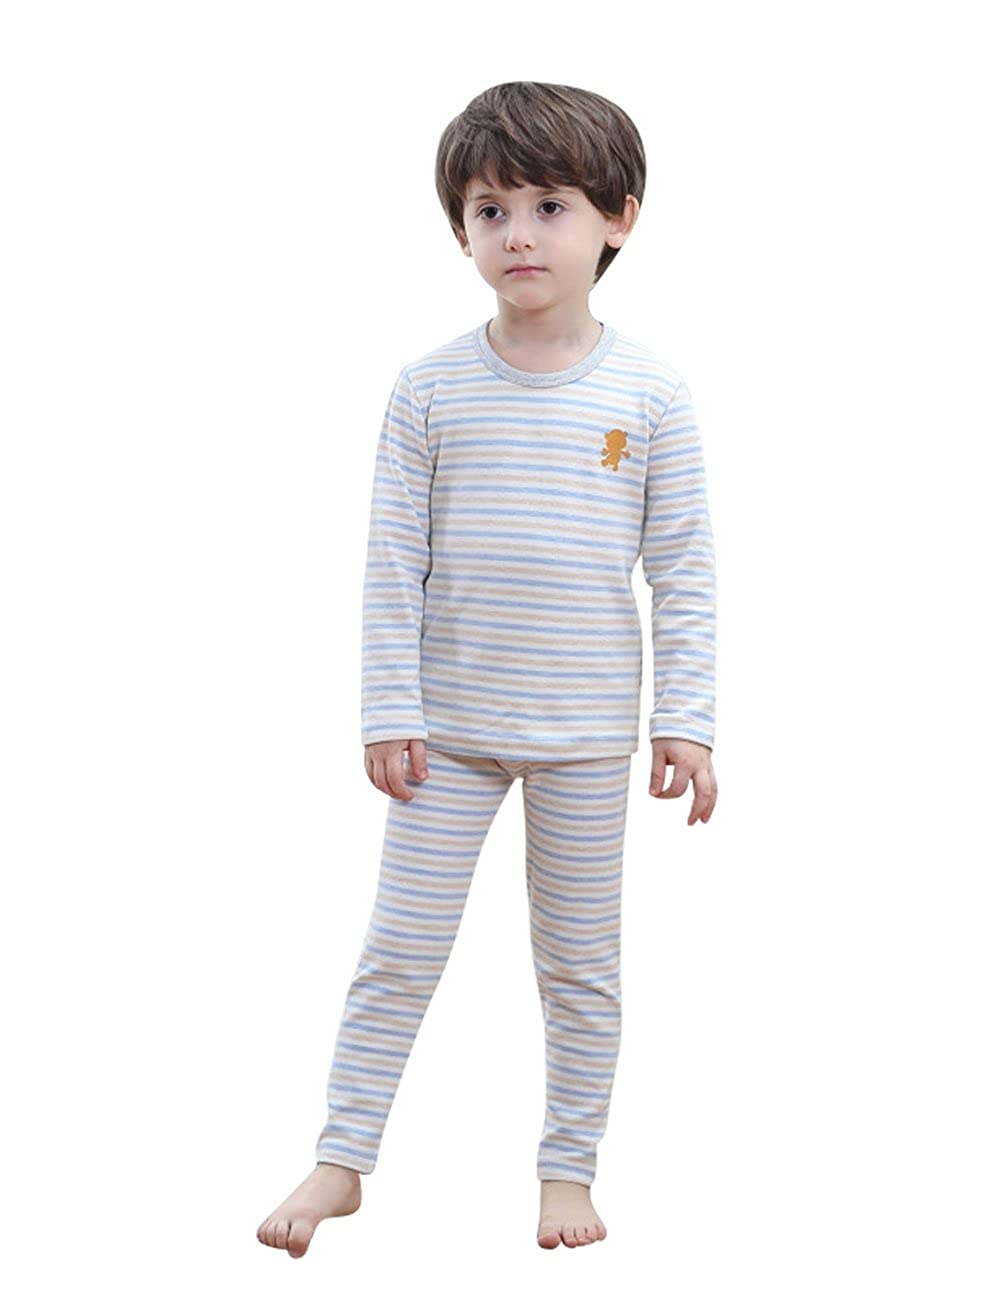 Mokaya Children's Soft Thermal Underwear Set Long Top and Bottom CN-YWLL-8005